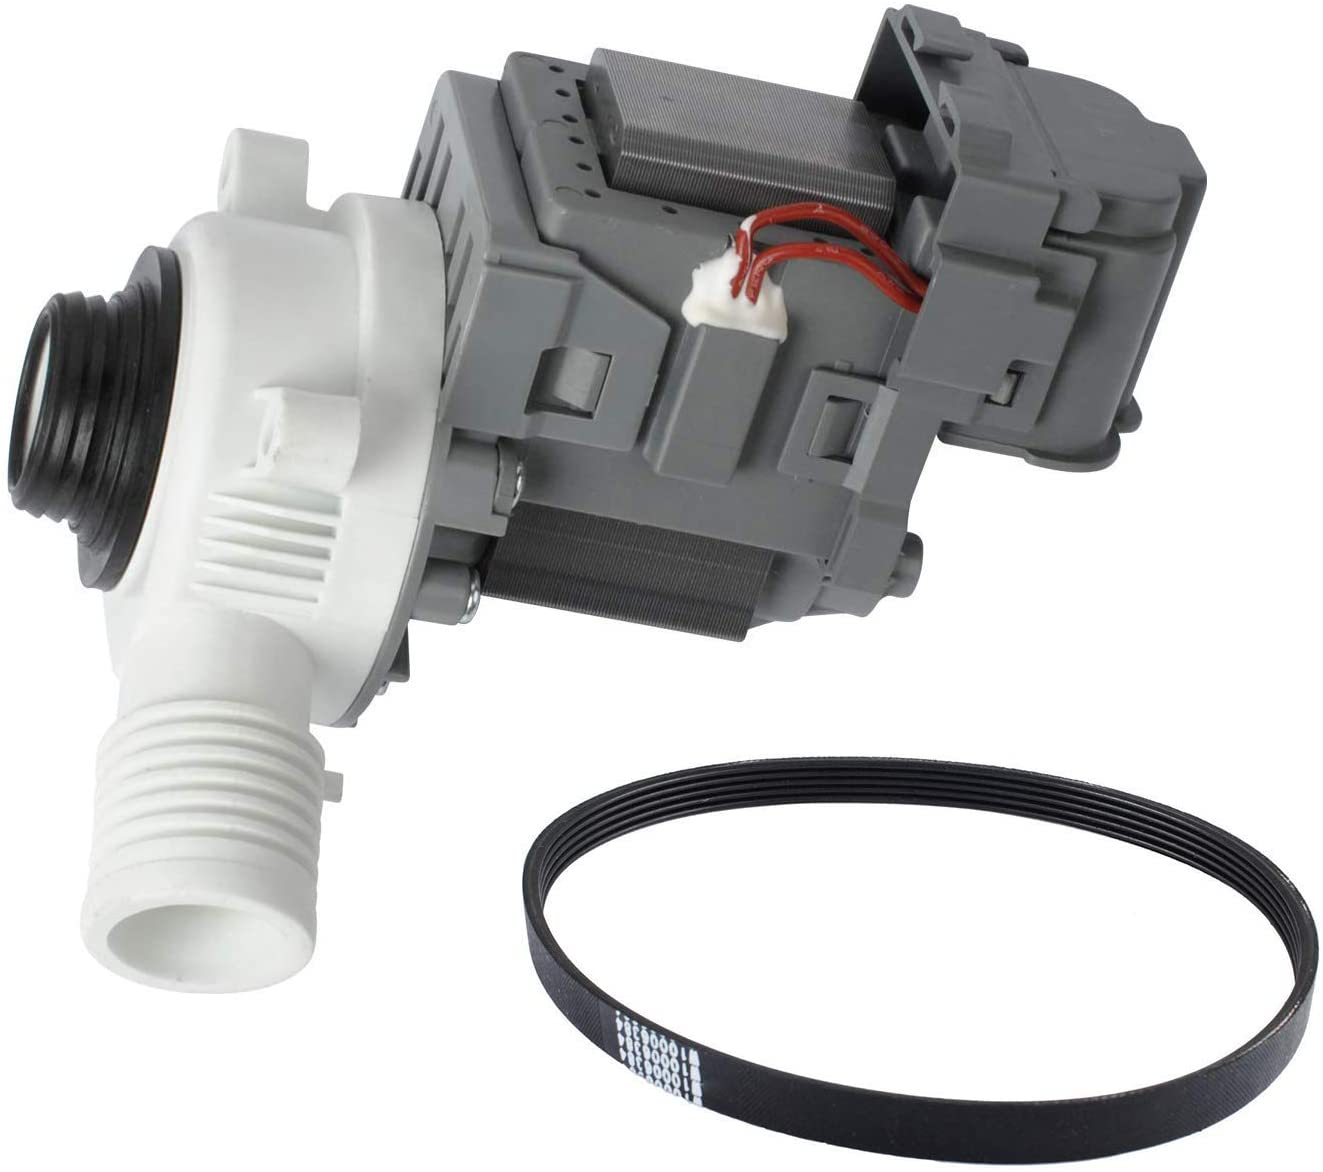 W10276397 Washer Drain Pump by Ketofa Compatible with Whirlpool, Ken-more Washers Replaces LP397 AP6018417 WPW10276397VP with W10006384 Drive Belt